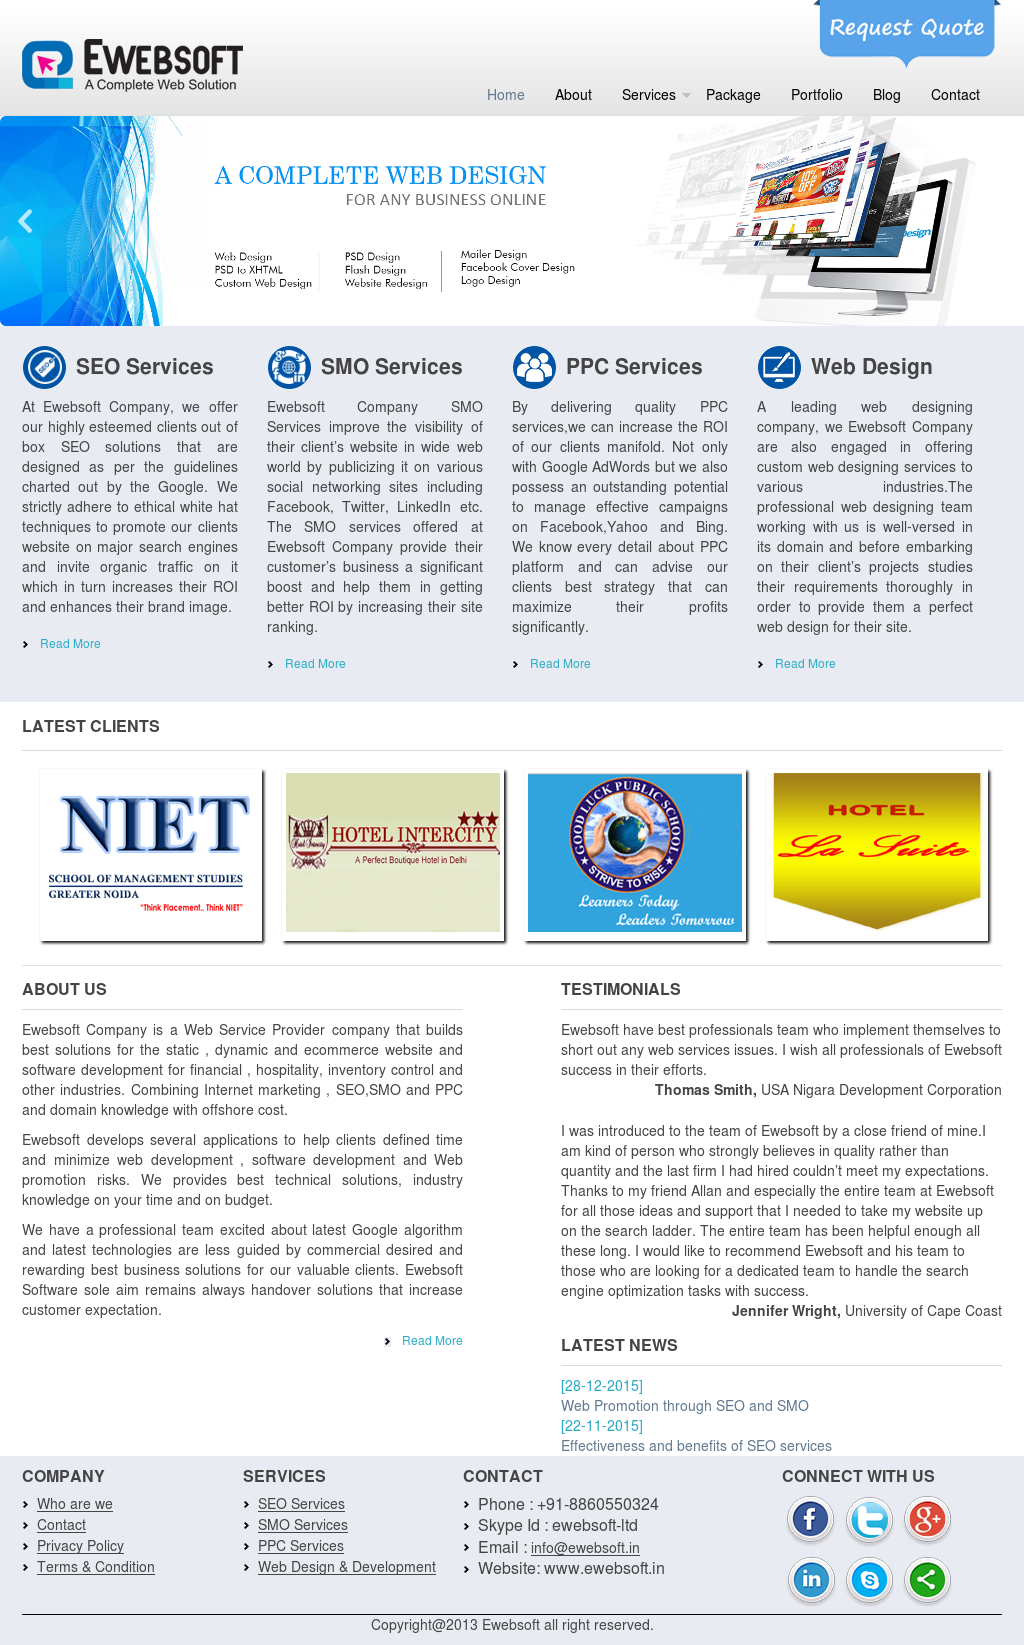 Ewebsoft Competitors, Revenue and Employees - Owler Company Profile